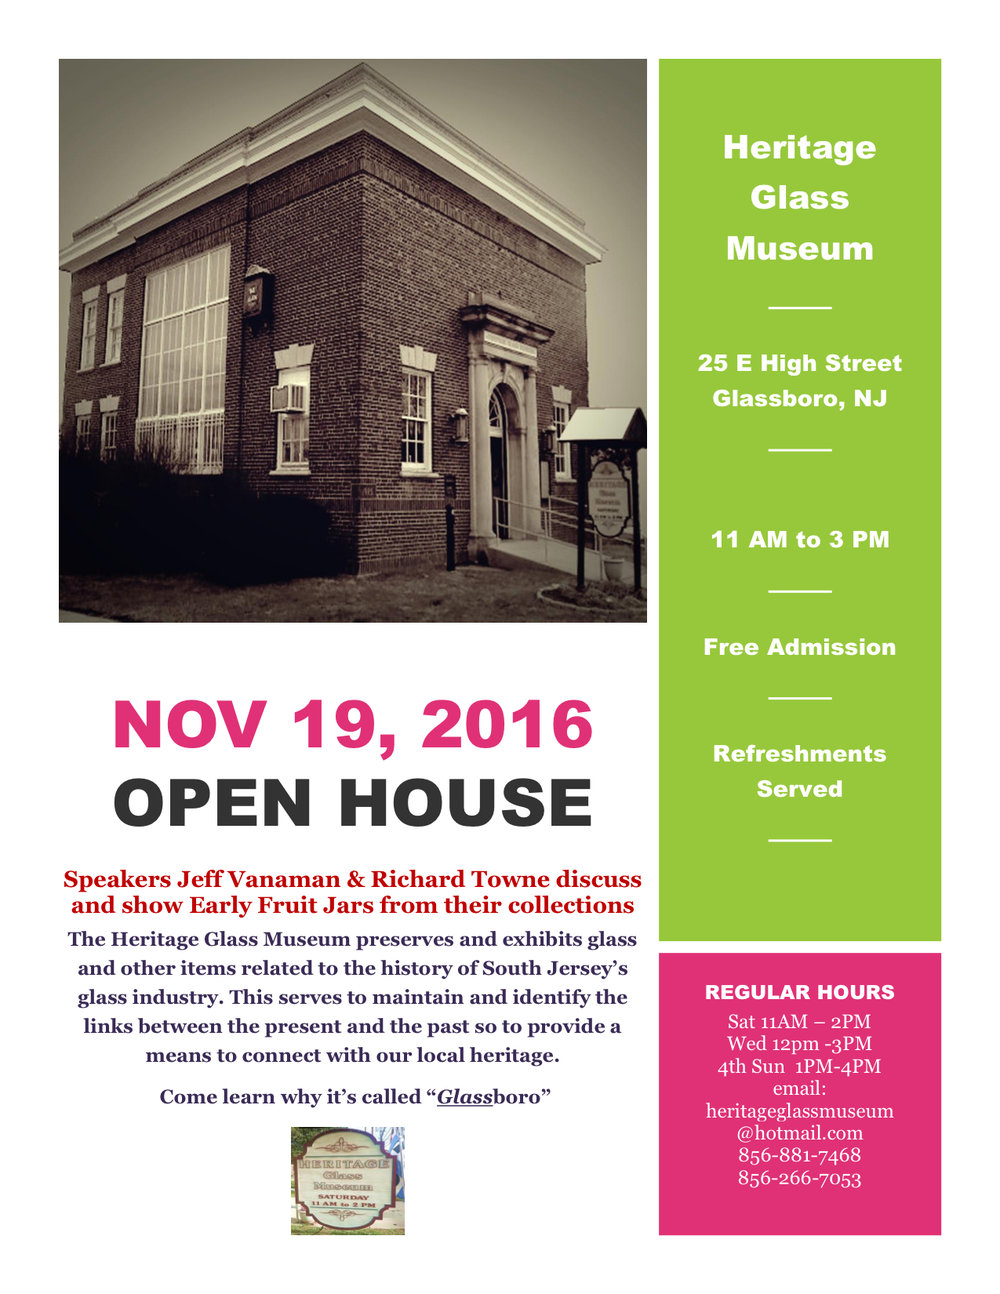 heritage glass museum open house